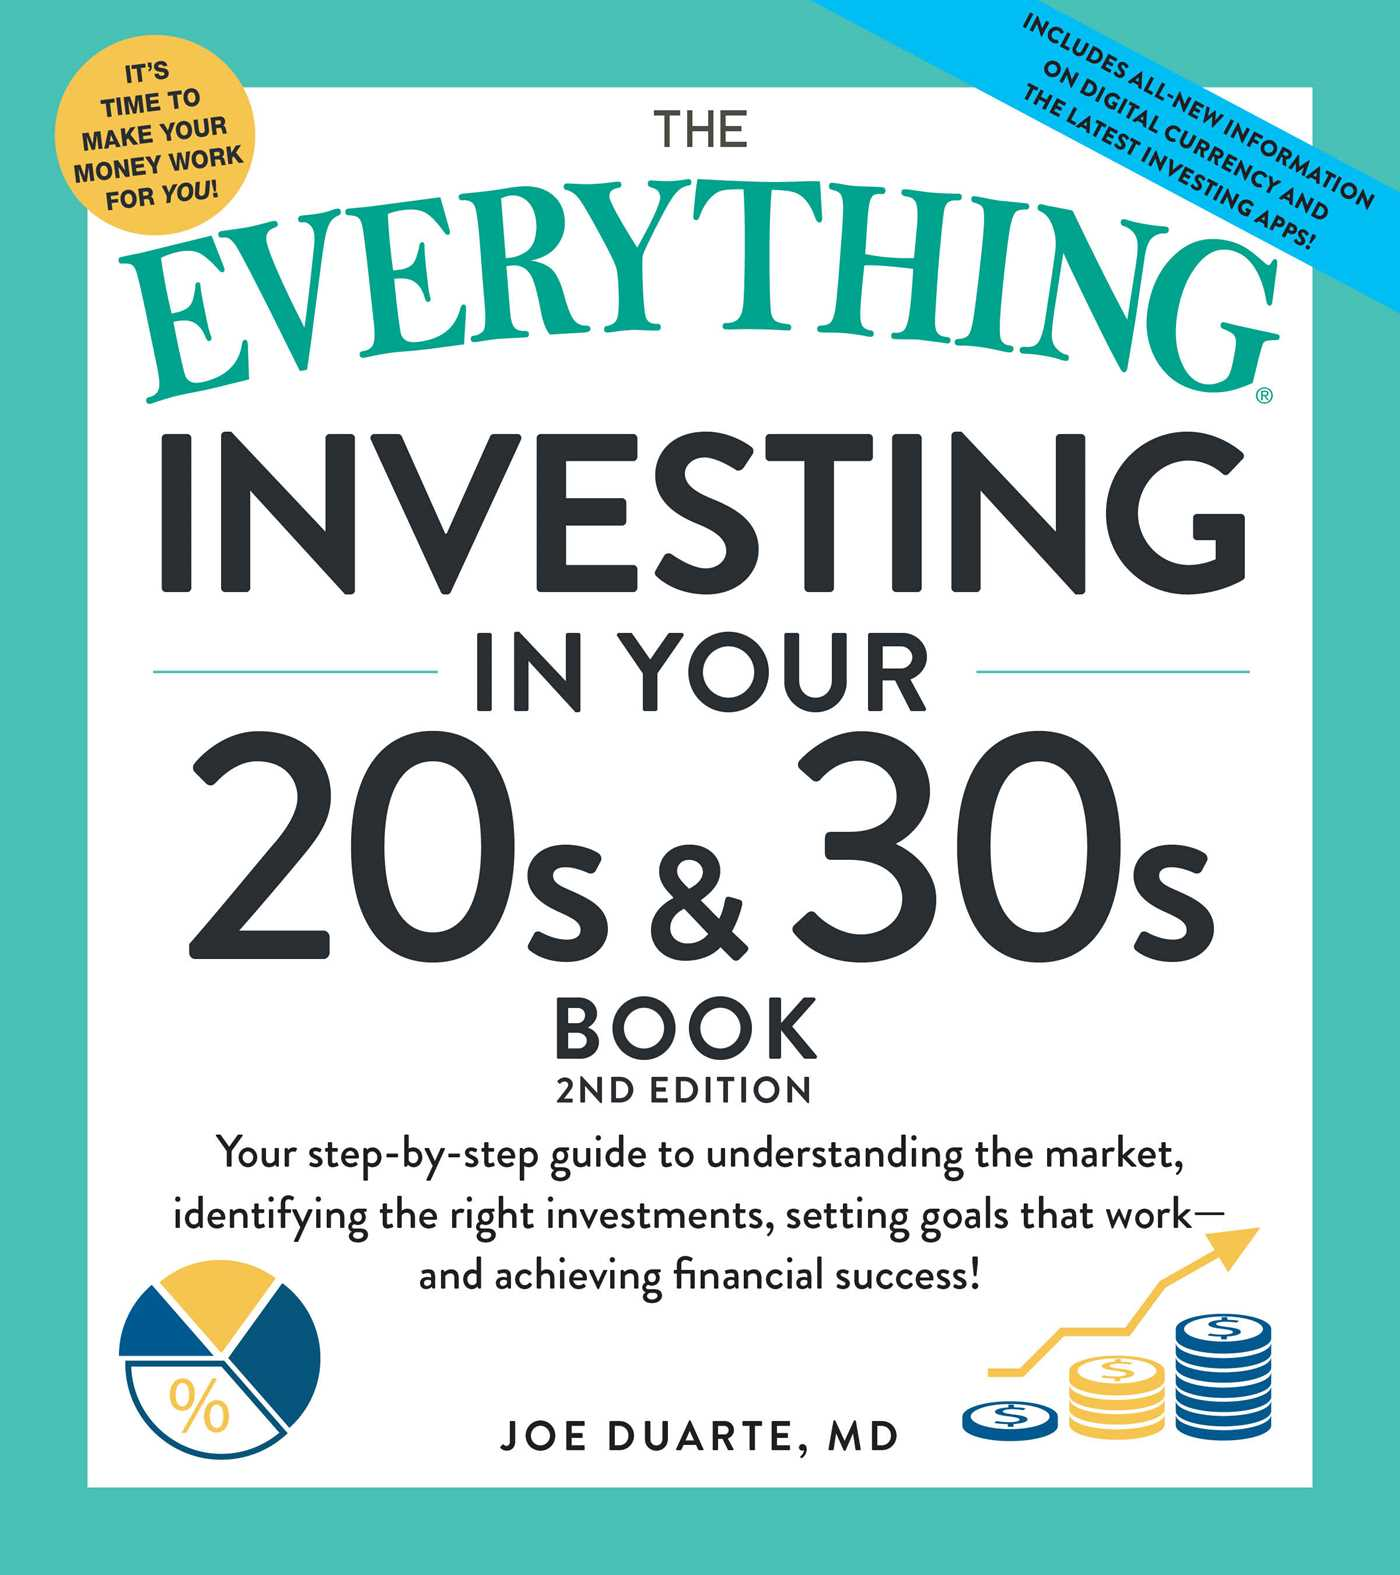 pics Investing in Your 20s and 30s, Part 2